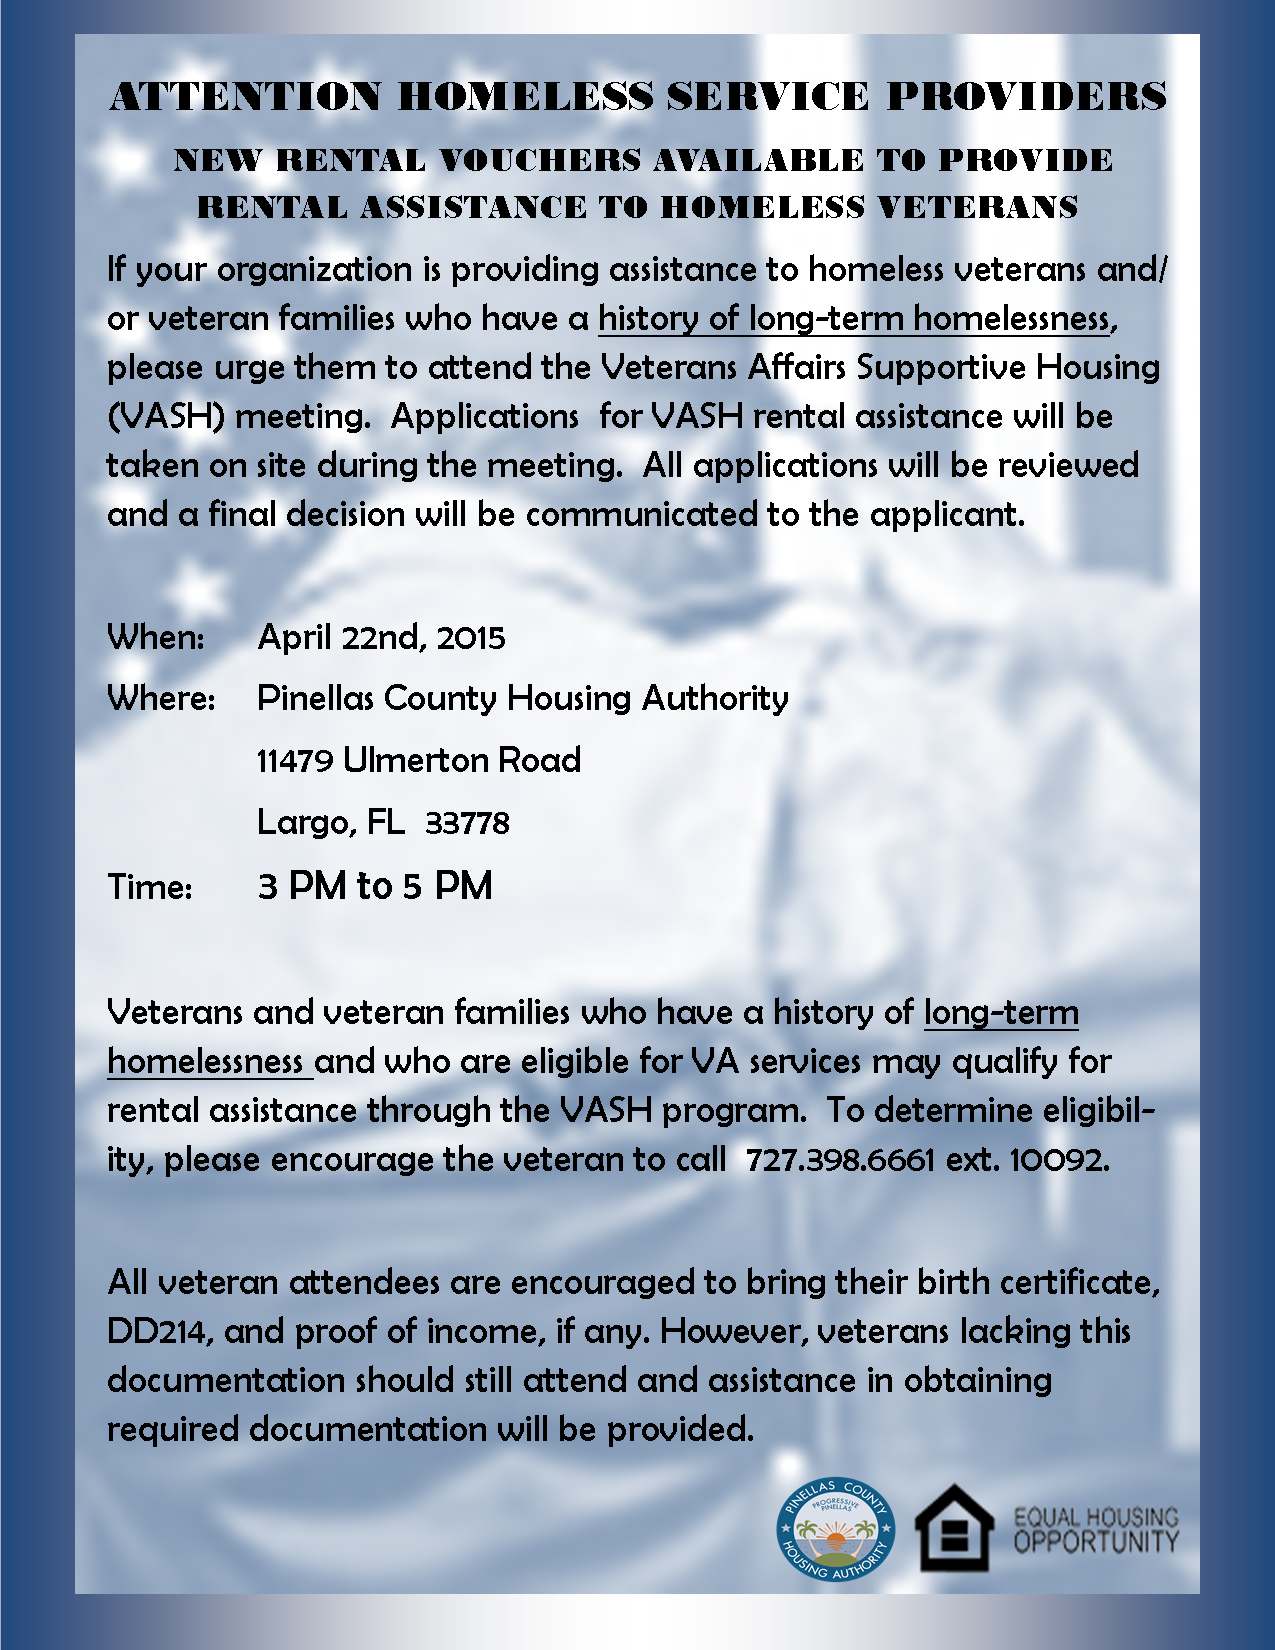 VASH April 22nd Outreach to Service Providers Churches